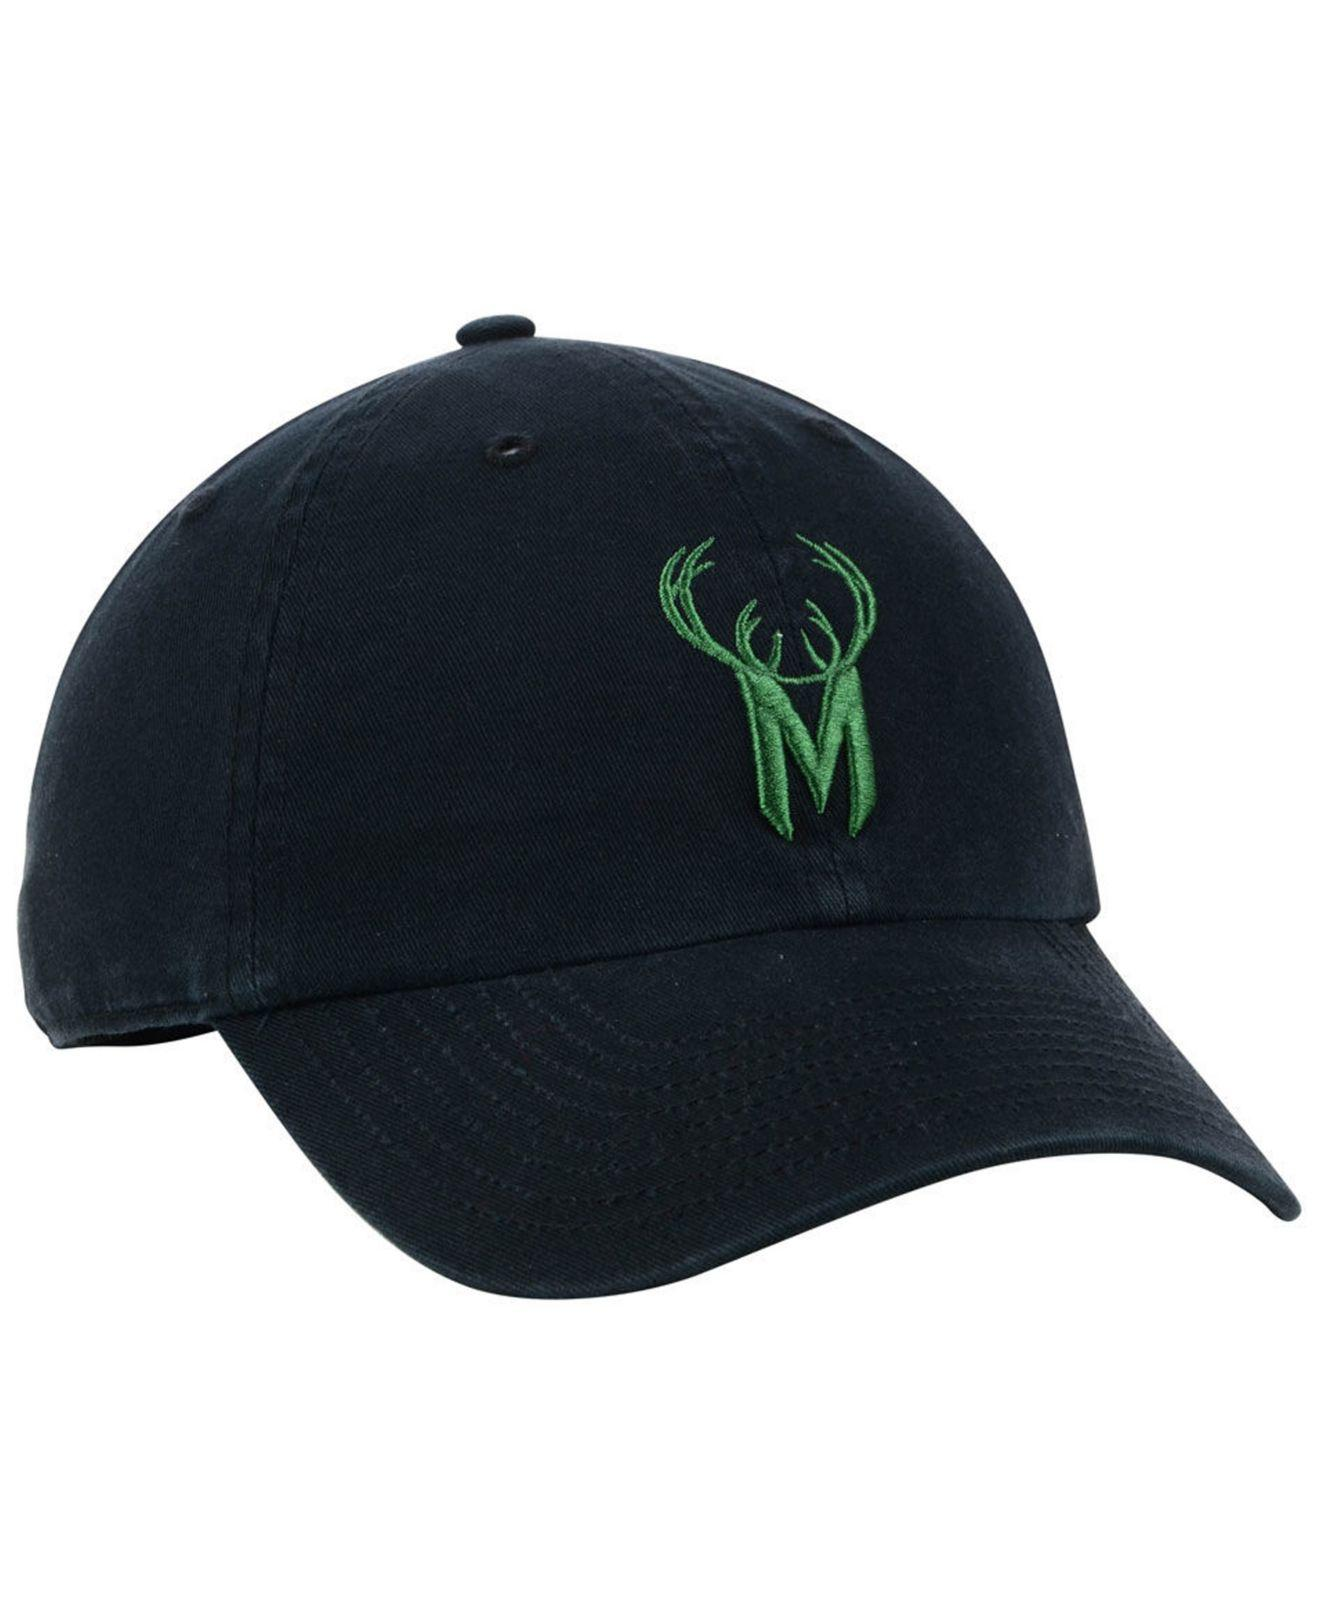 c4ede7ad426 Lyst - 47 Brand Milwaukee Bucks Mash Up Clean Up Cap in Black for Men